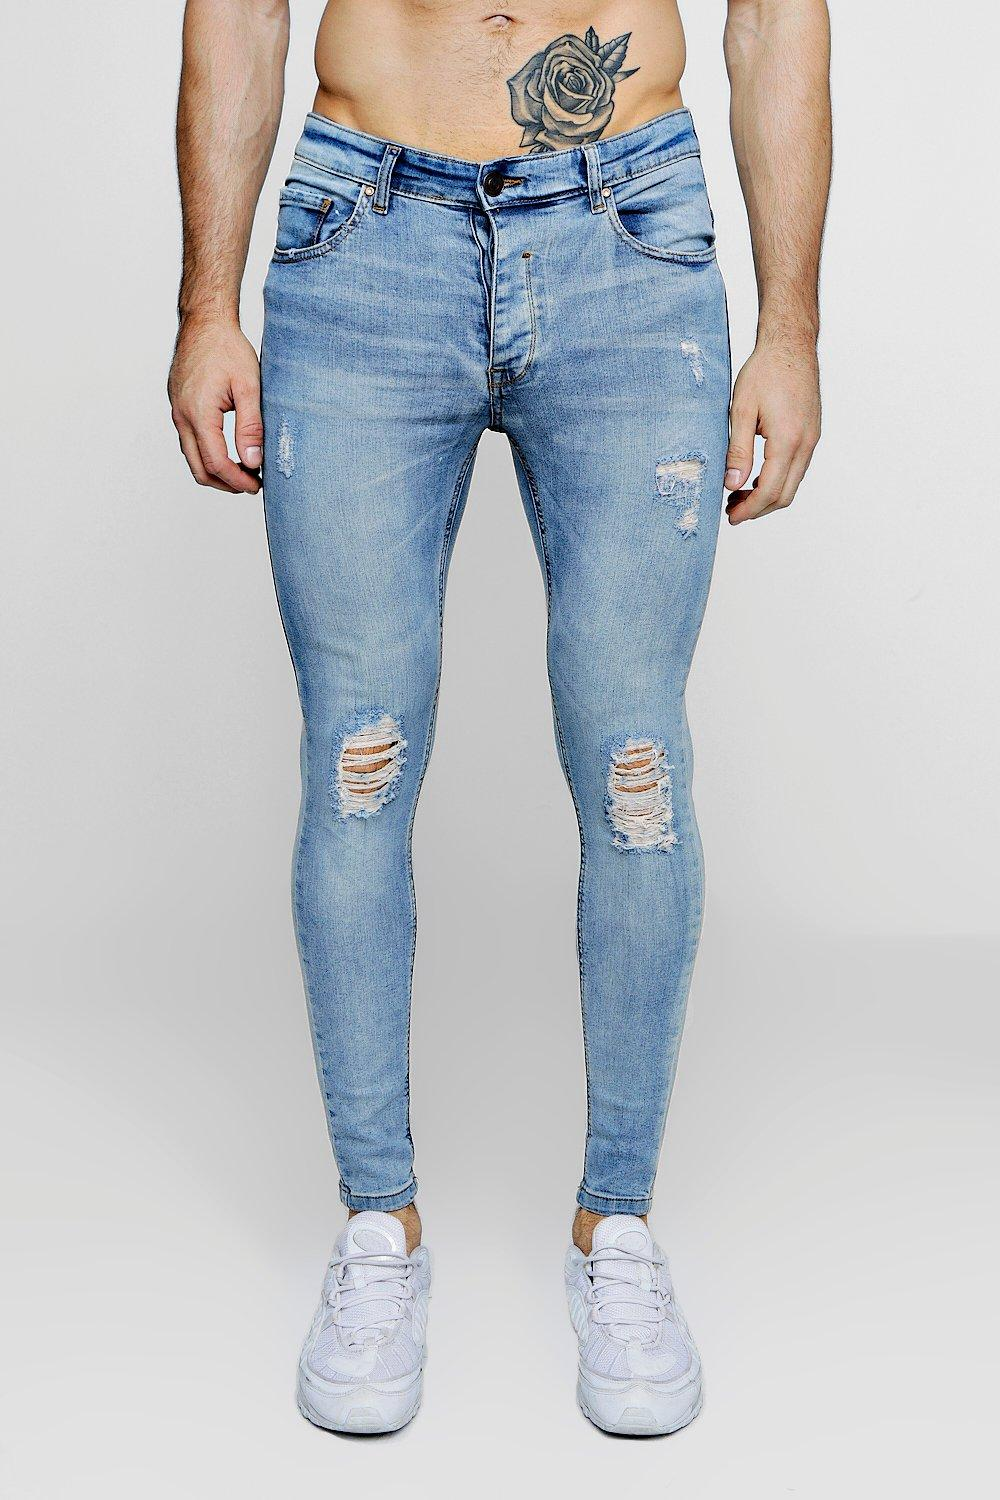 blue knee Fit Rips washed Jeans With Super Skinny qxUfwIcFZ0